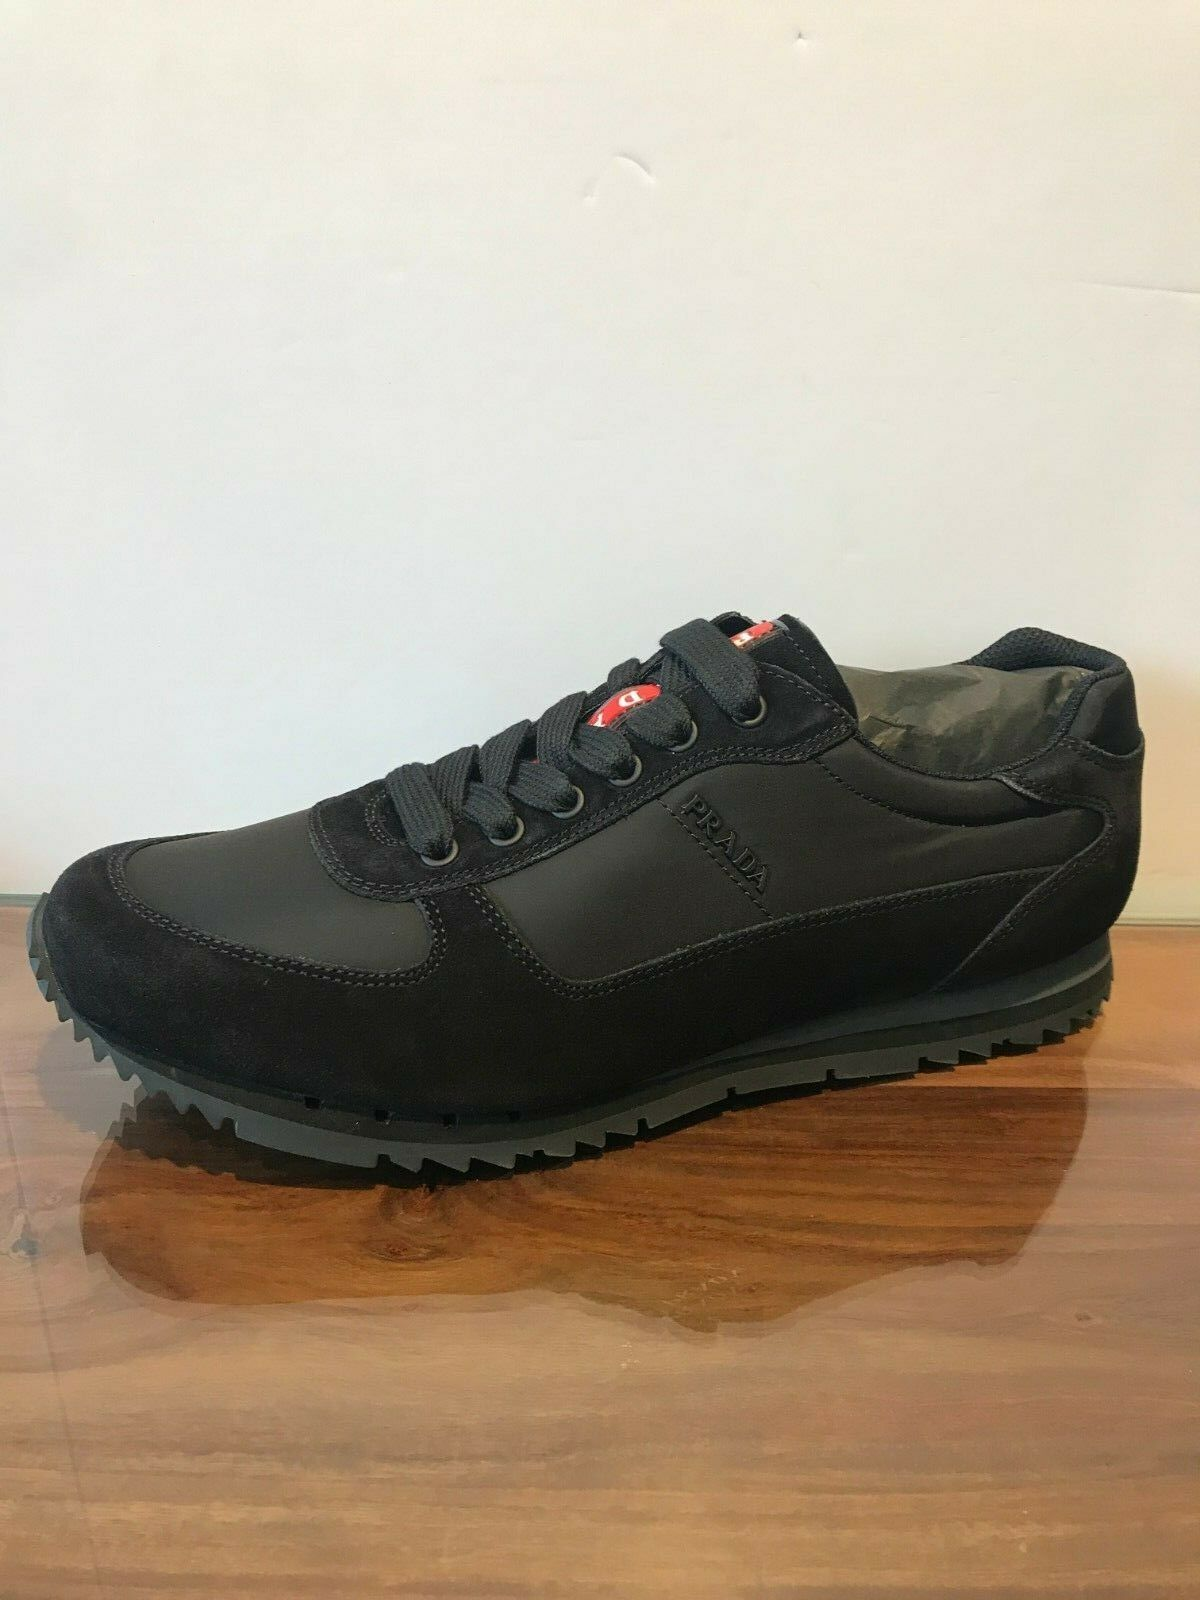 Men's Prada shoes Runners Size Brand New With Box